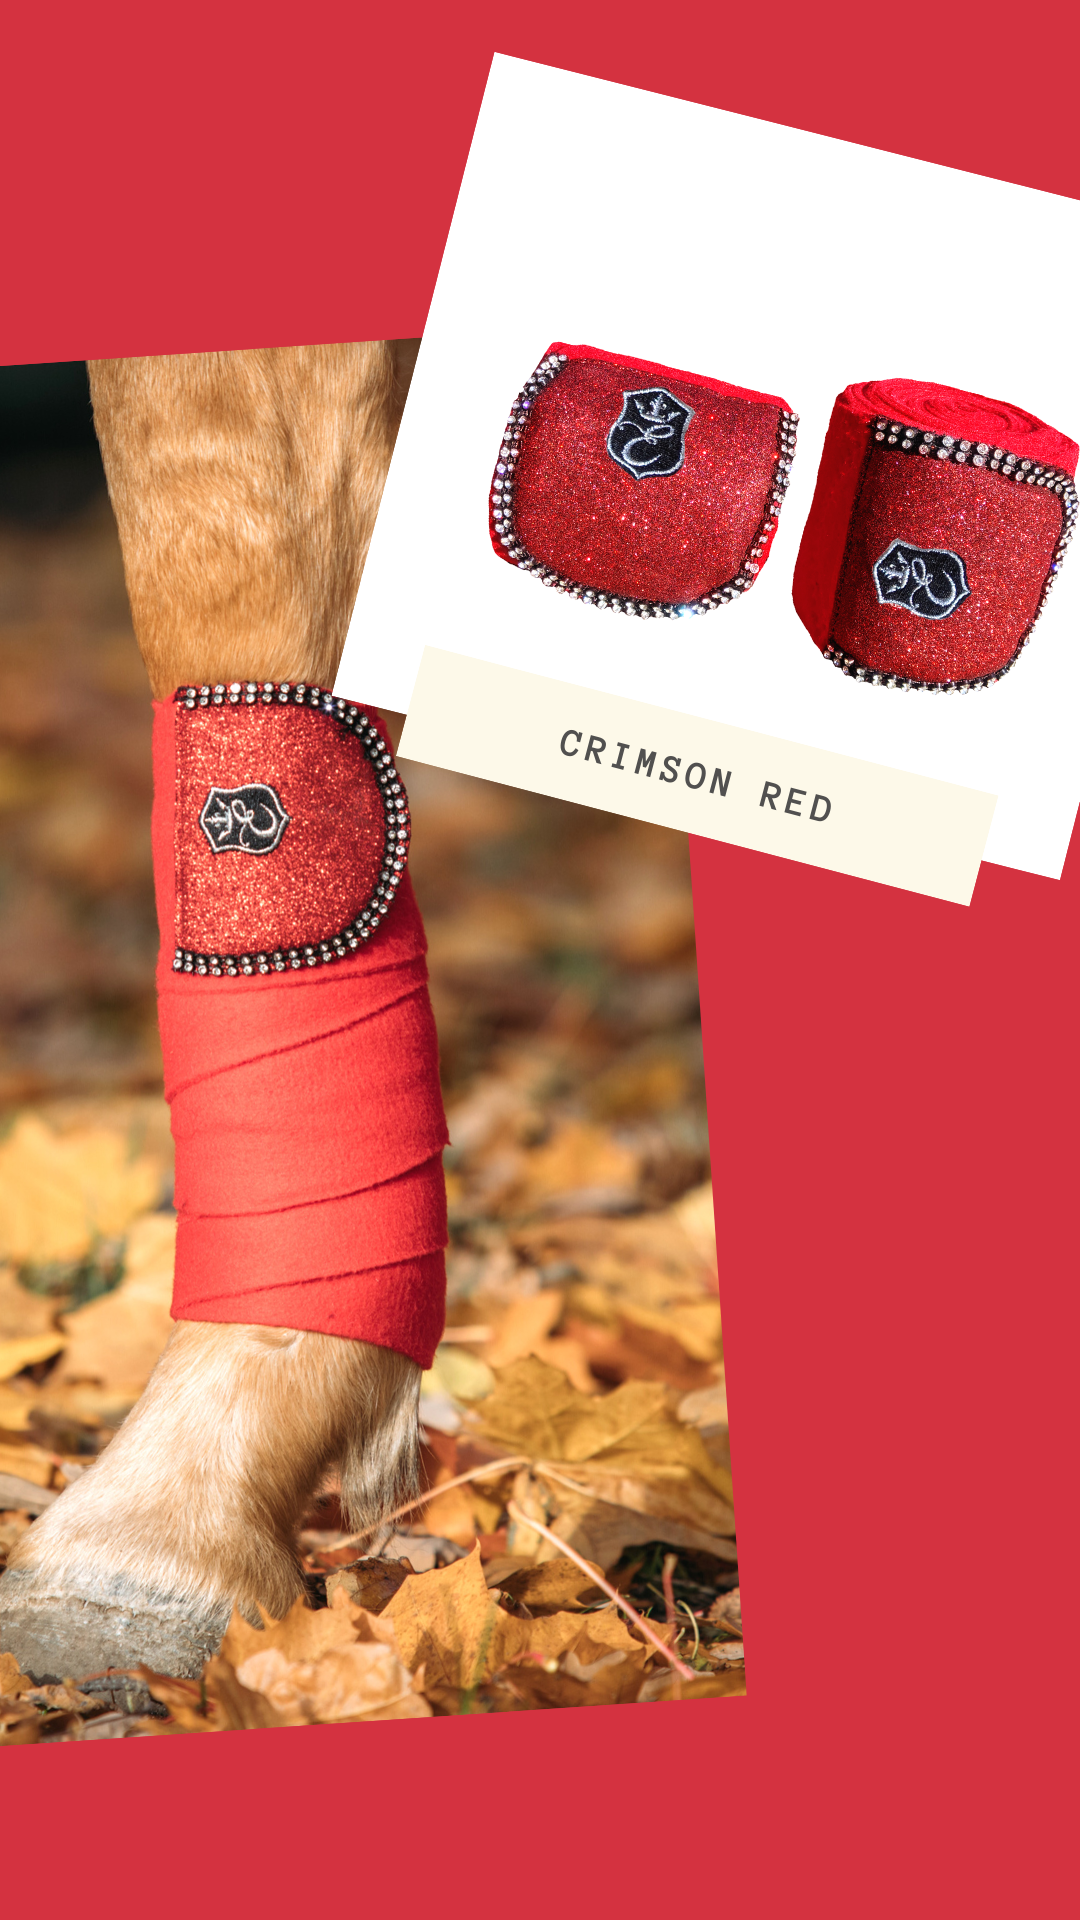 Christmas Polo Boots 2020 Crimson Red Polo Wraps (set of 4) in 2020 | Polo wraps, Embroidery